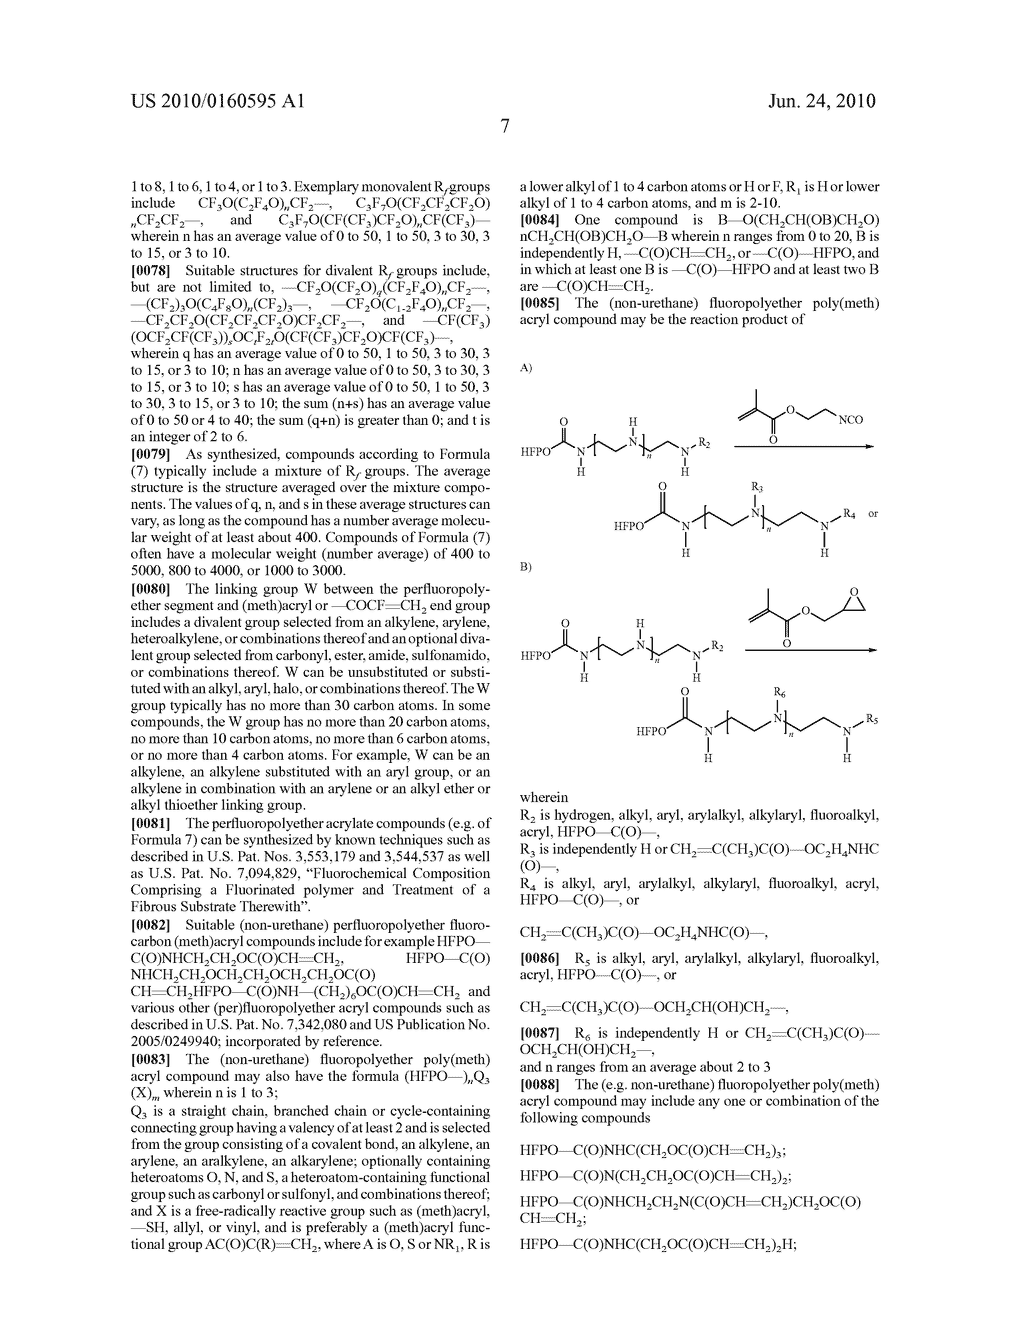 PERFLUOROPOLYETHER URETHANE ADDITIVES HAVING (METH)ACRYL GROUPS AND HARD COATS - diagram, schematic, and image 09